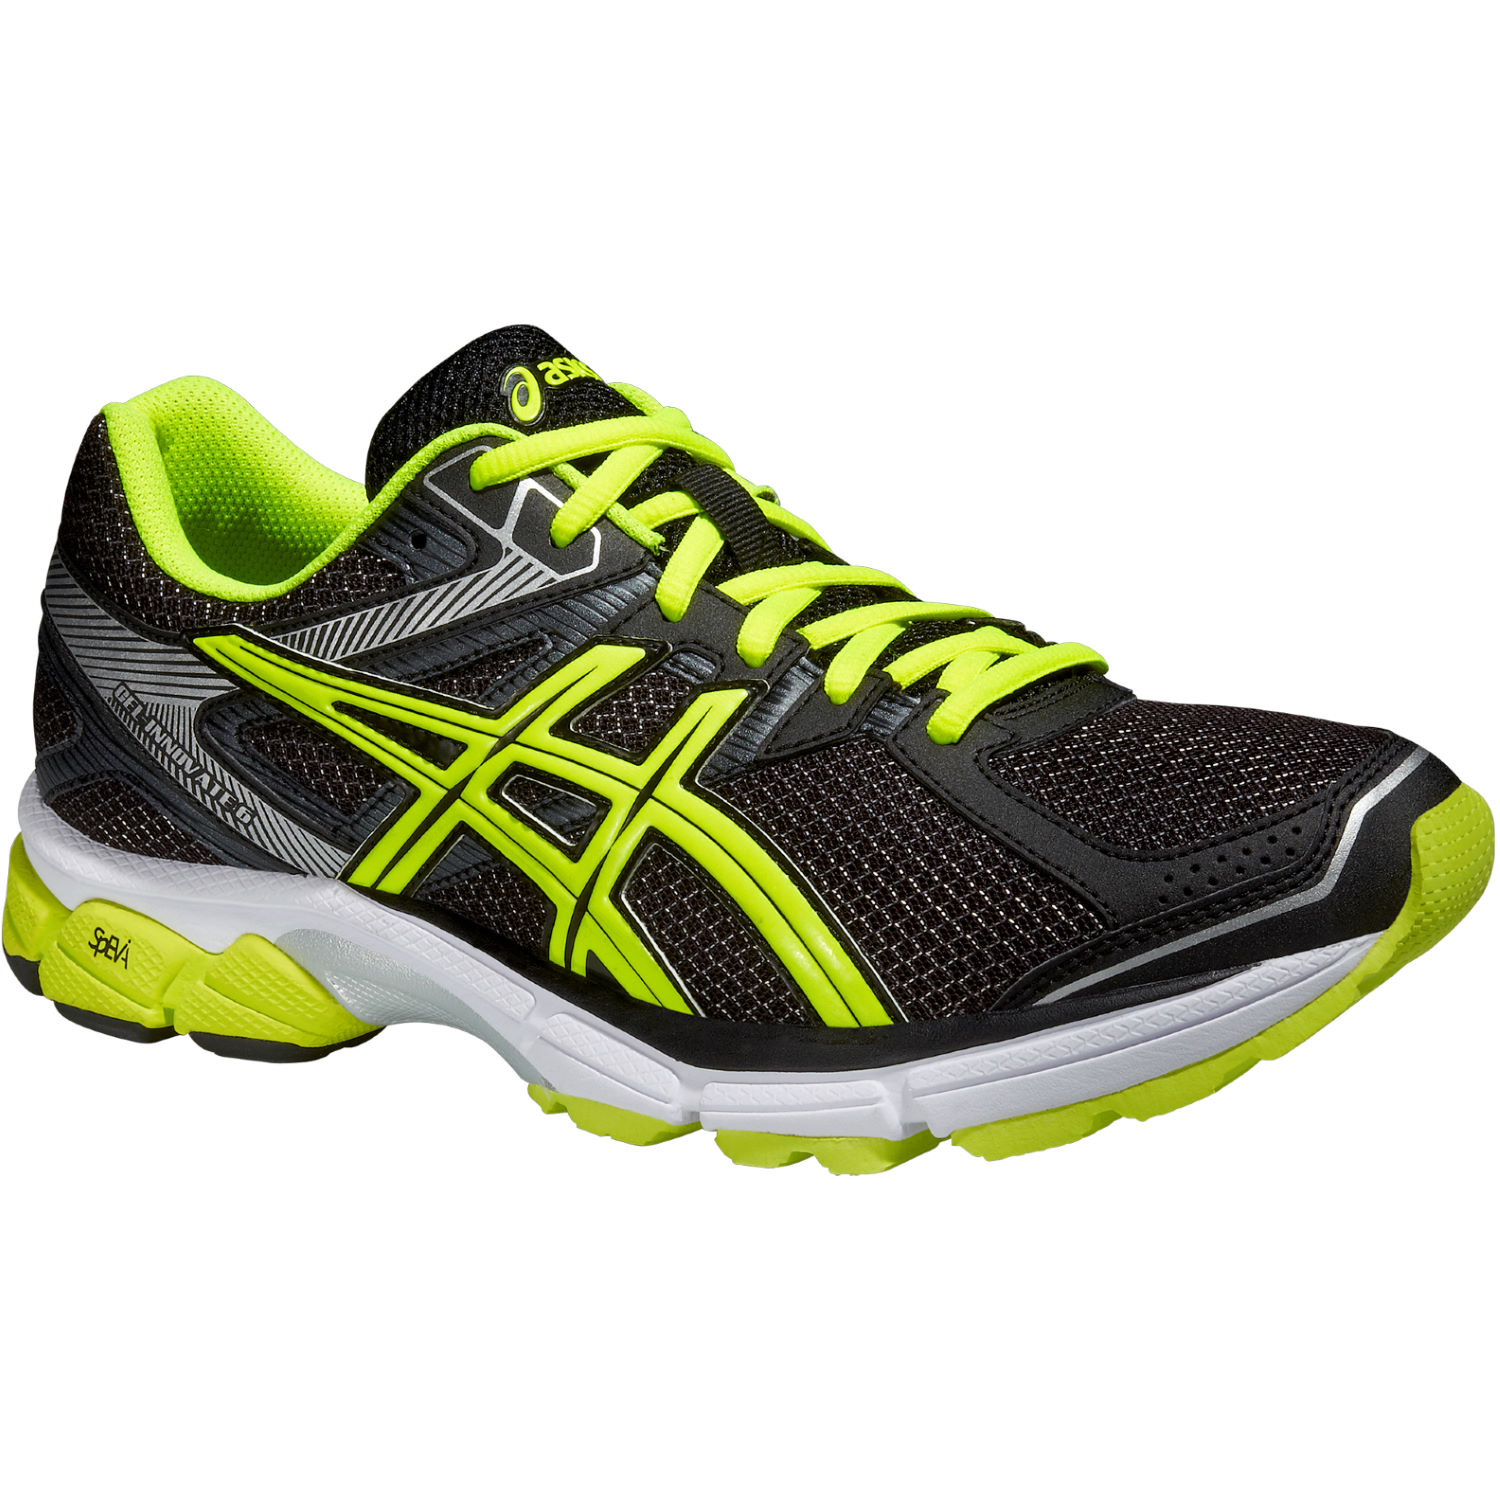 Black Running Shoes Clearance